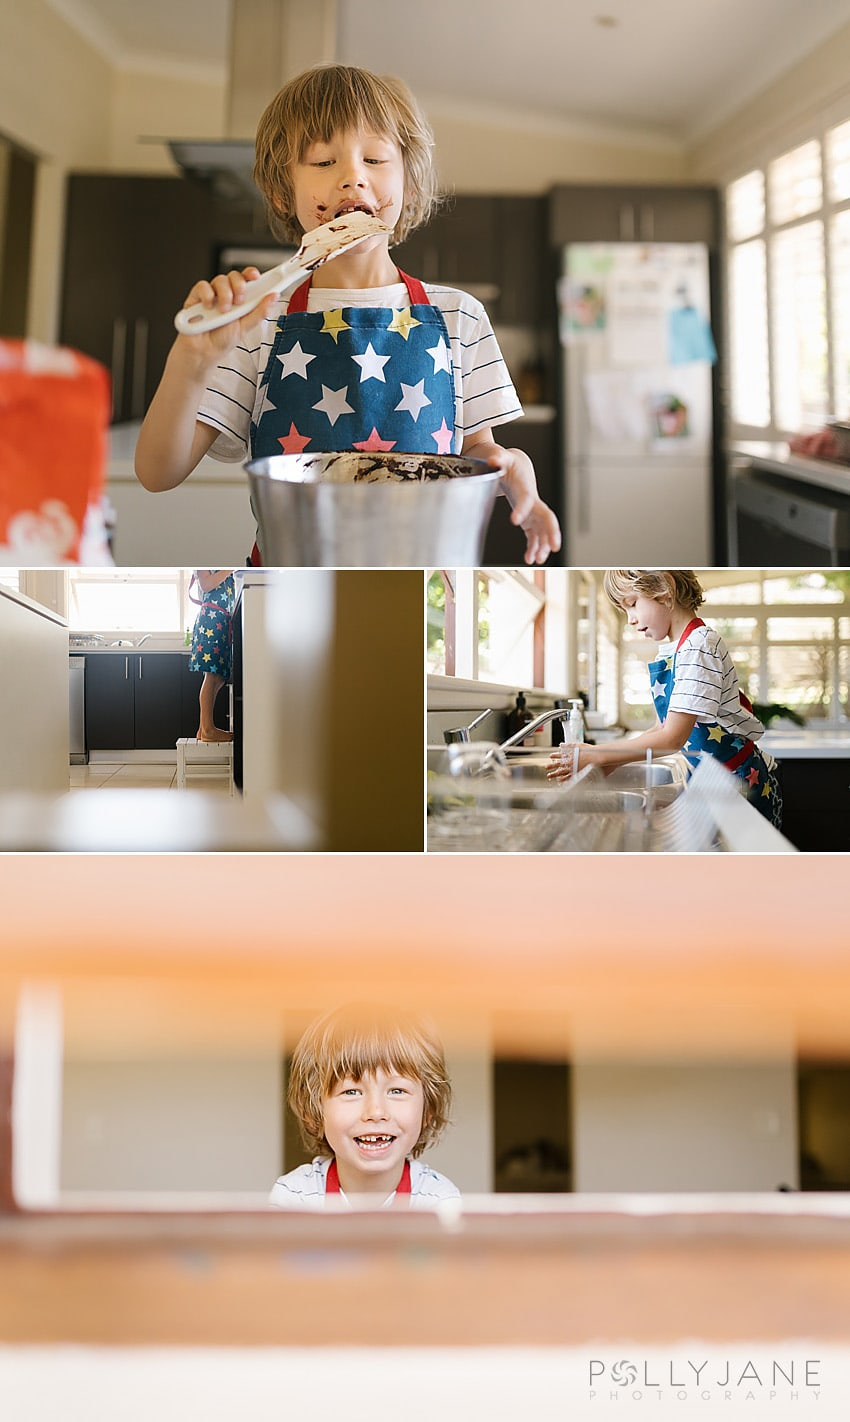 sydney-in-home-lifestyle-family-photography-sutherland-shire